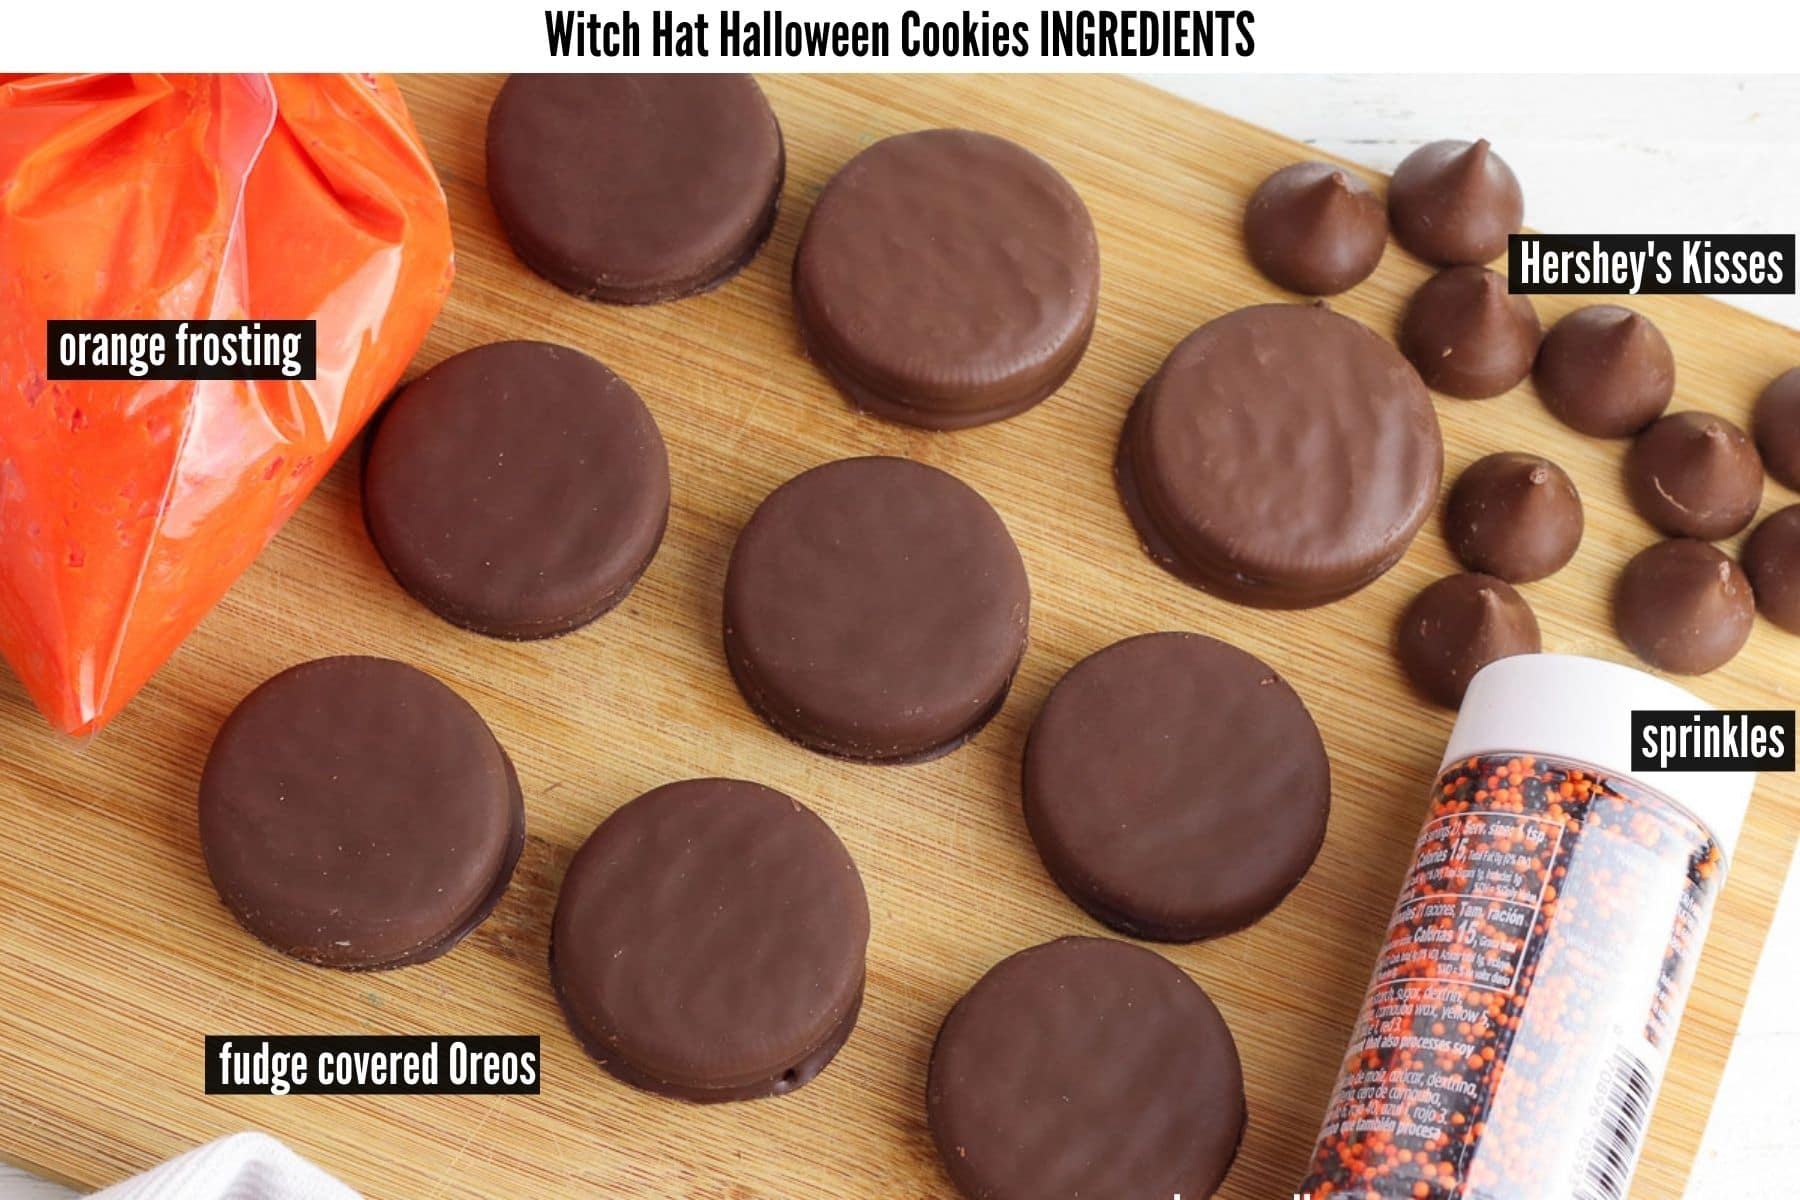 witch hat halloween cookies ingredients labelled